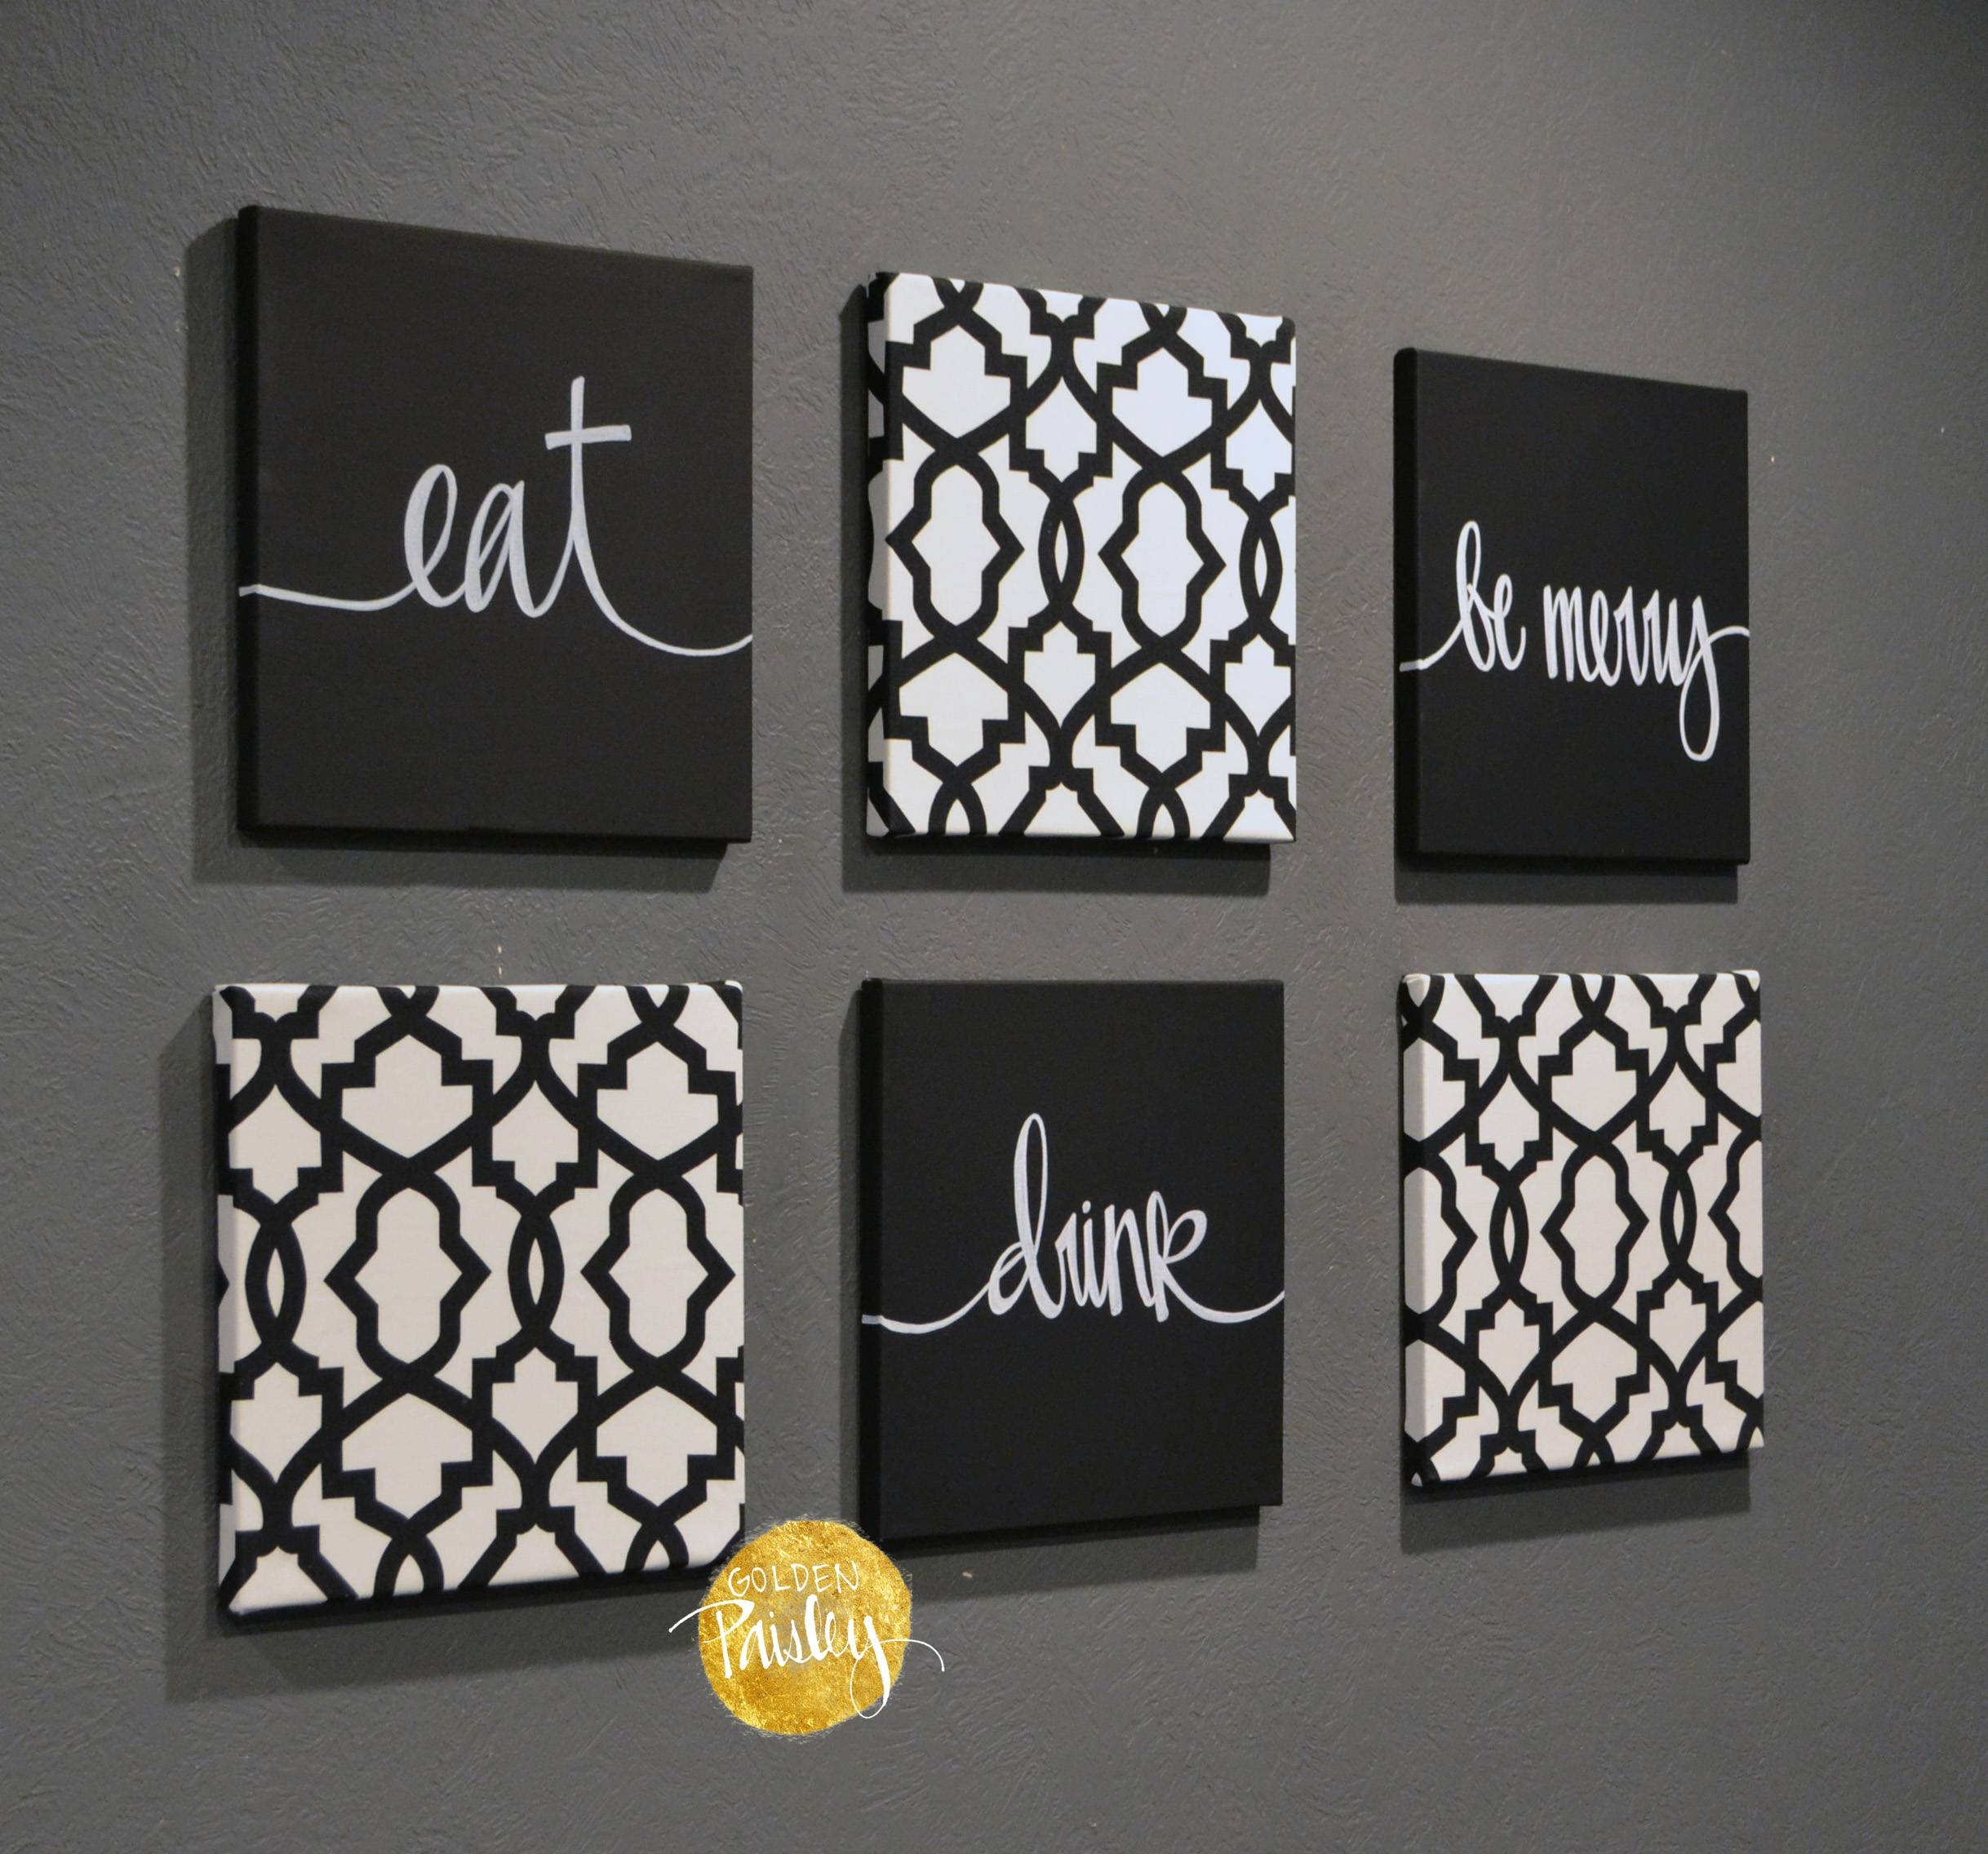 Black And White Trellis 6 Pack Wall Art Throughout Most Current Black And White Wall Art Sets (View 6 of 20)